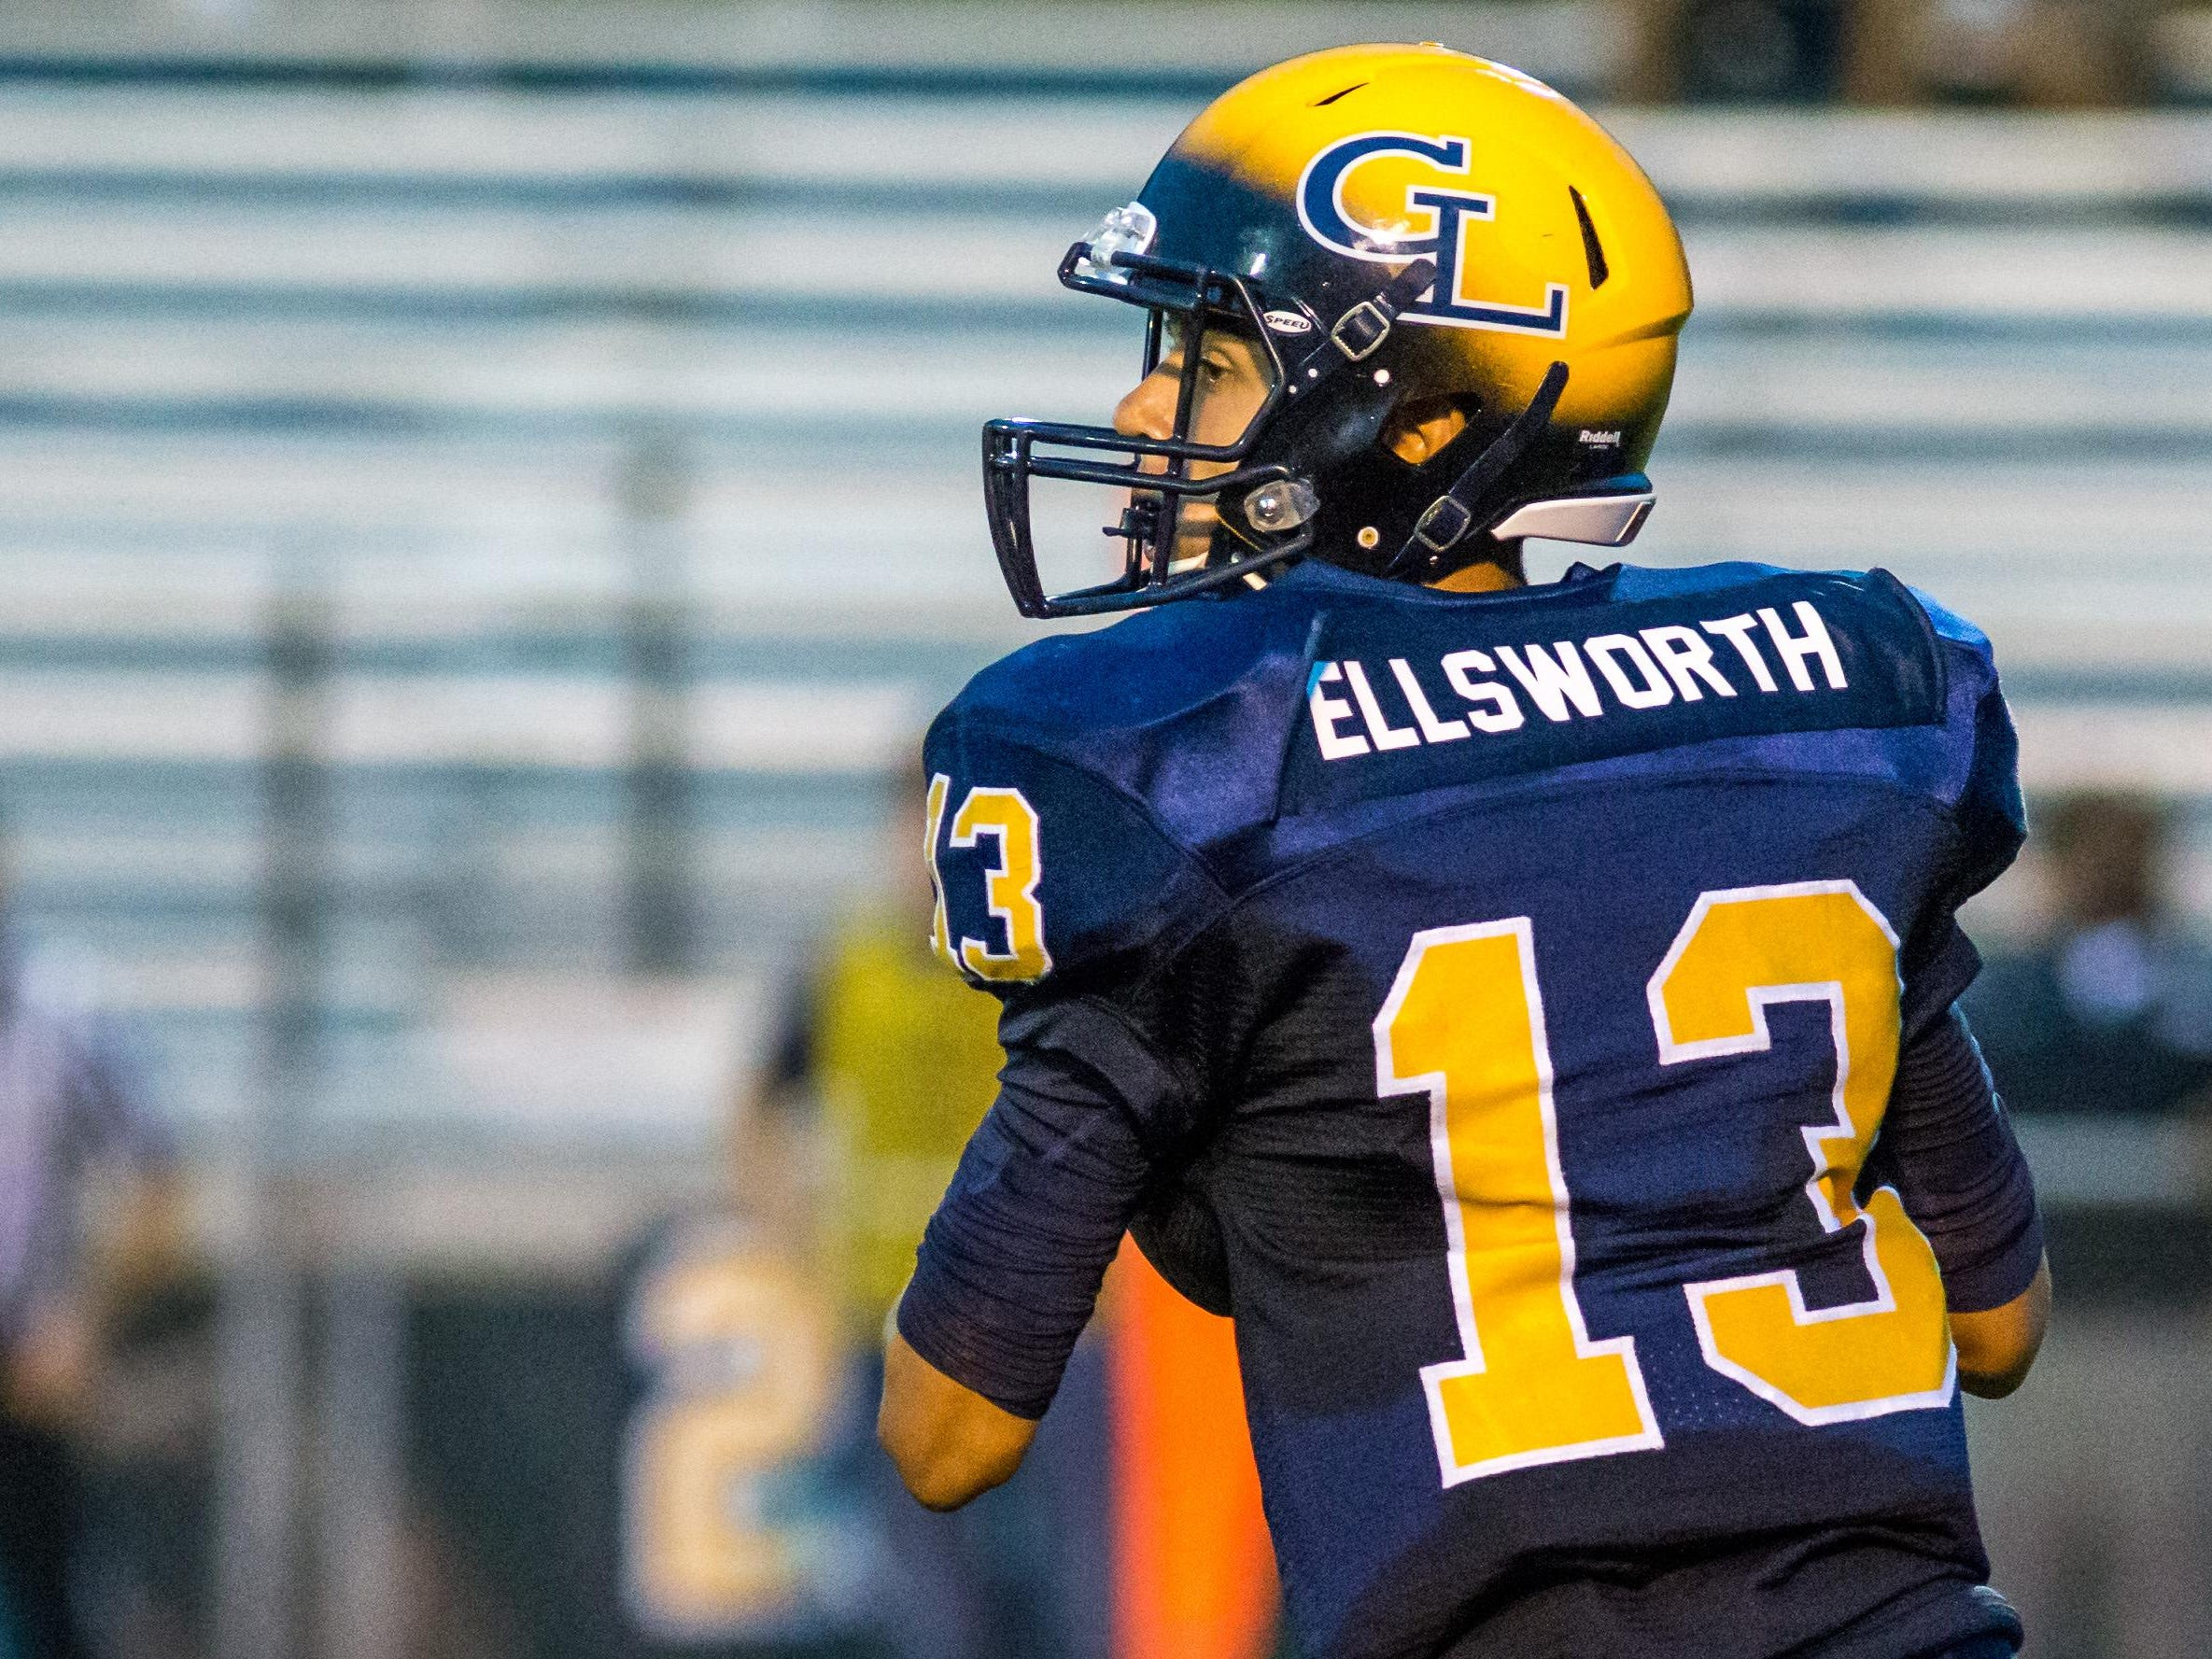 Grand Ledge quarterback Nolan Bird wears the last name of a fallen soldier during Friday's football game against Okemos.